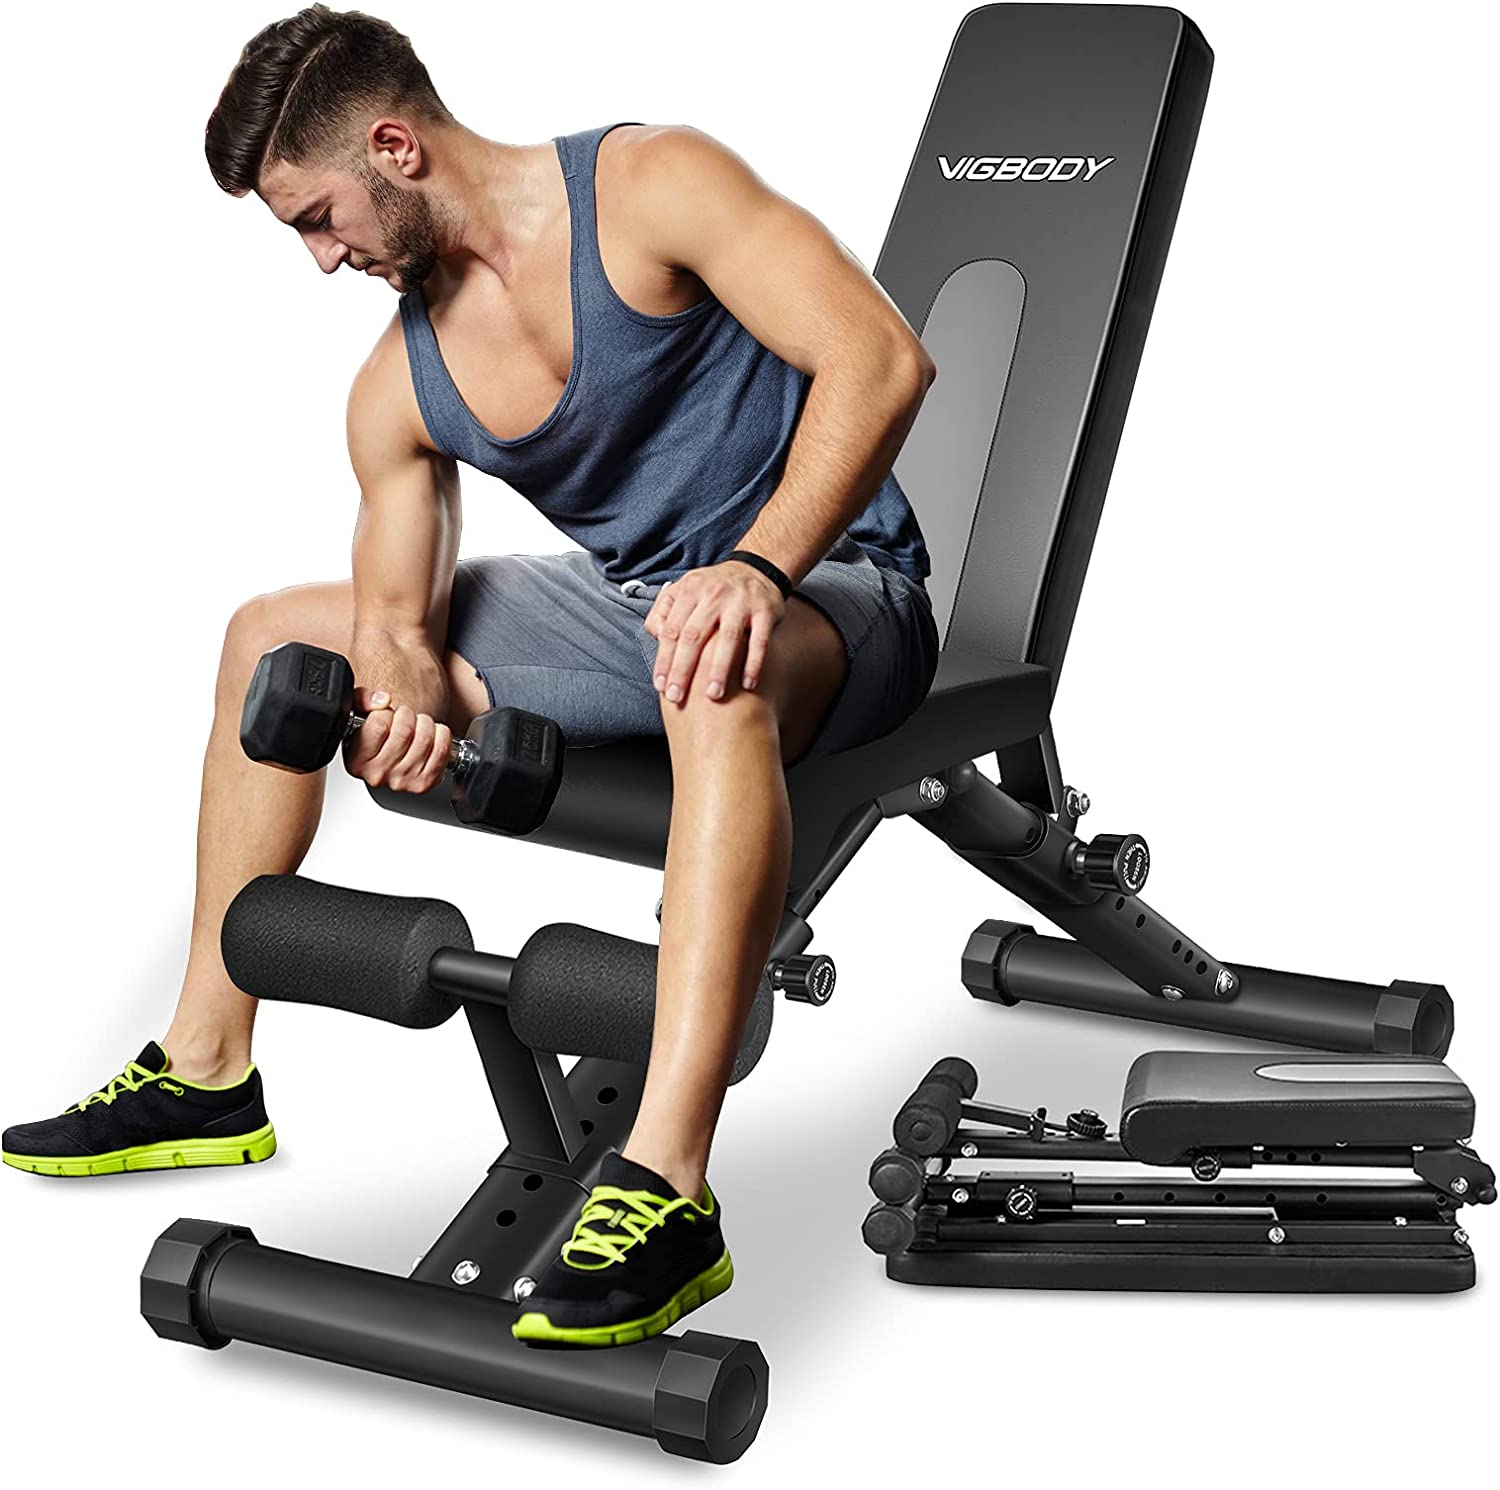 Adjustable Weight Bench Decline Incline Foldable Full Body Workout Gym Exercise